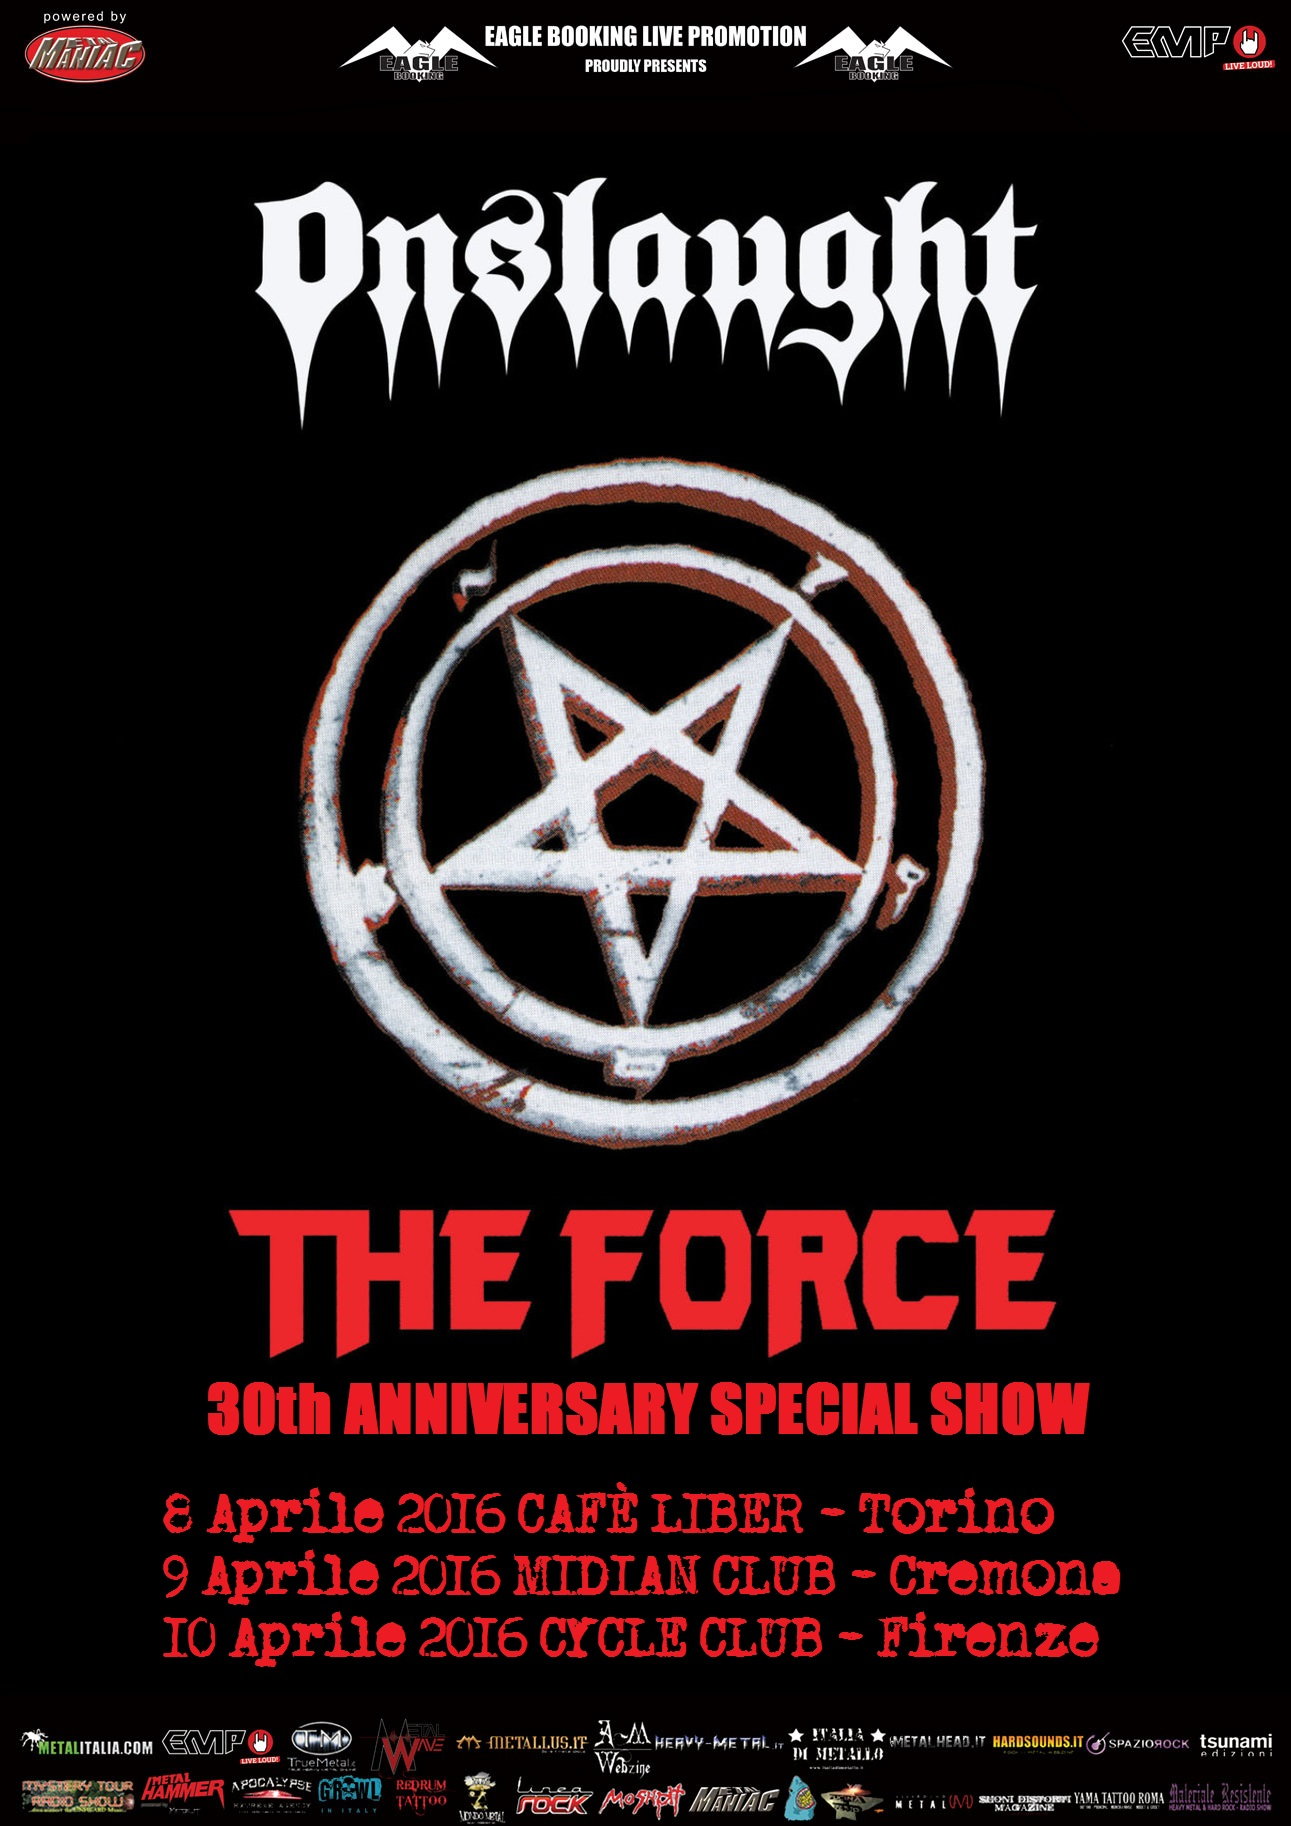 Onslaught in Italia - 30th Anniversary Special Show 52016 Promo